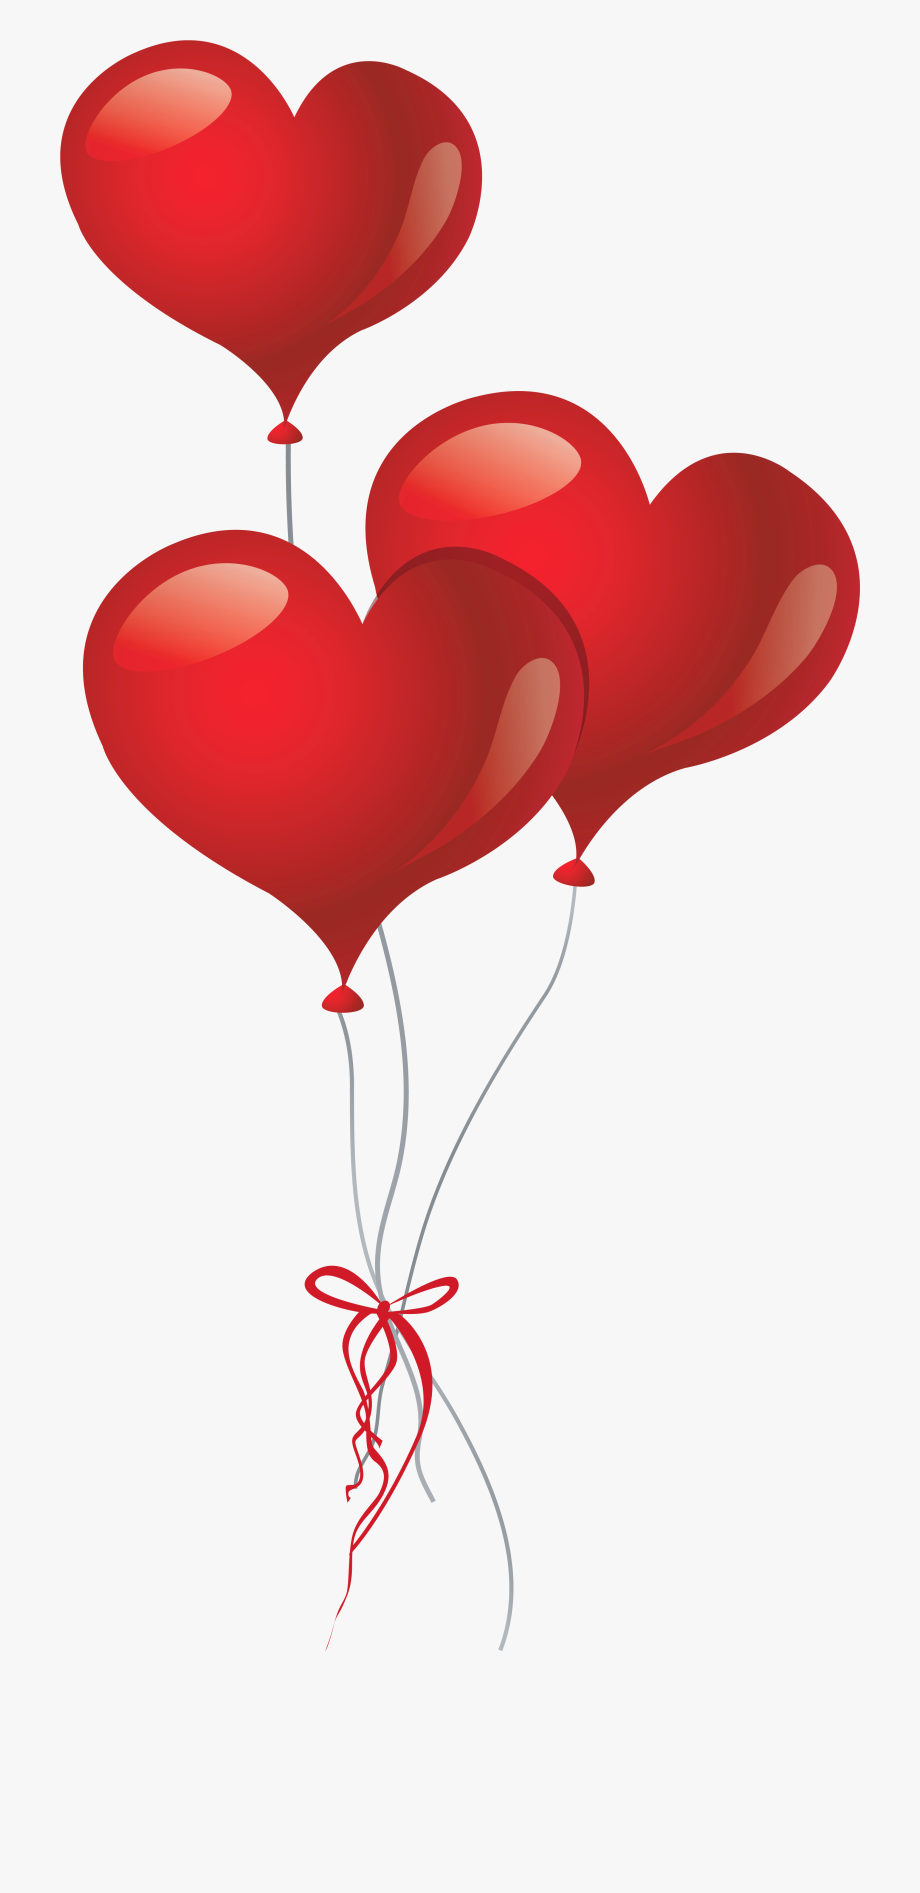 Heart balloon day png. Balloons clipart valentines